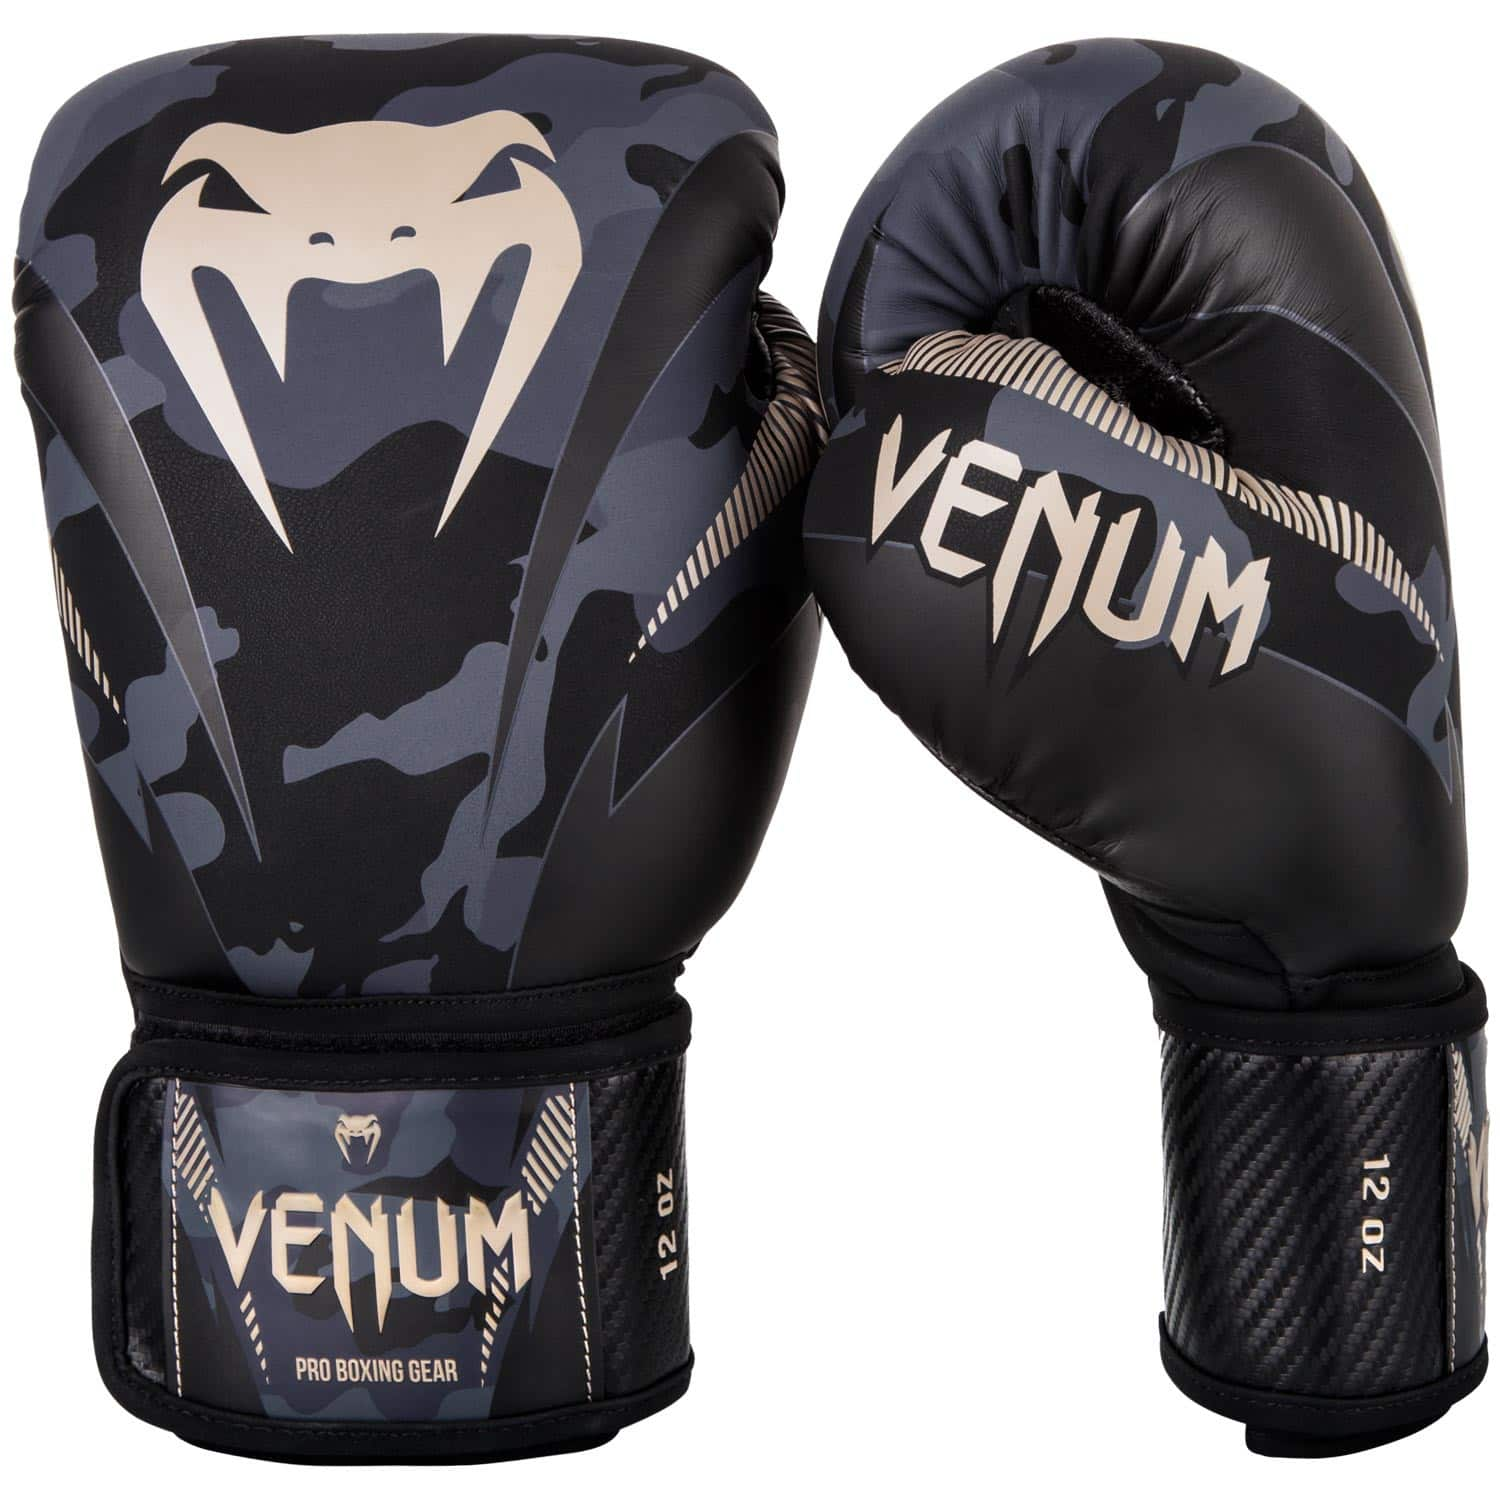 30%-70% of Venum boxing and MMA gear